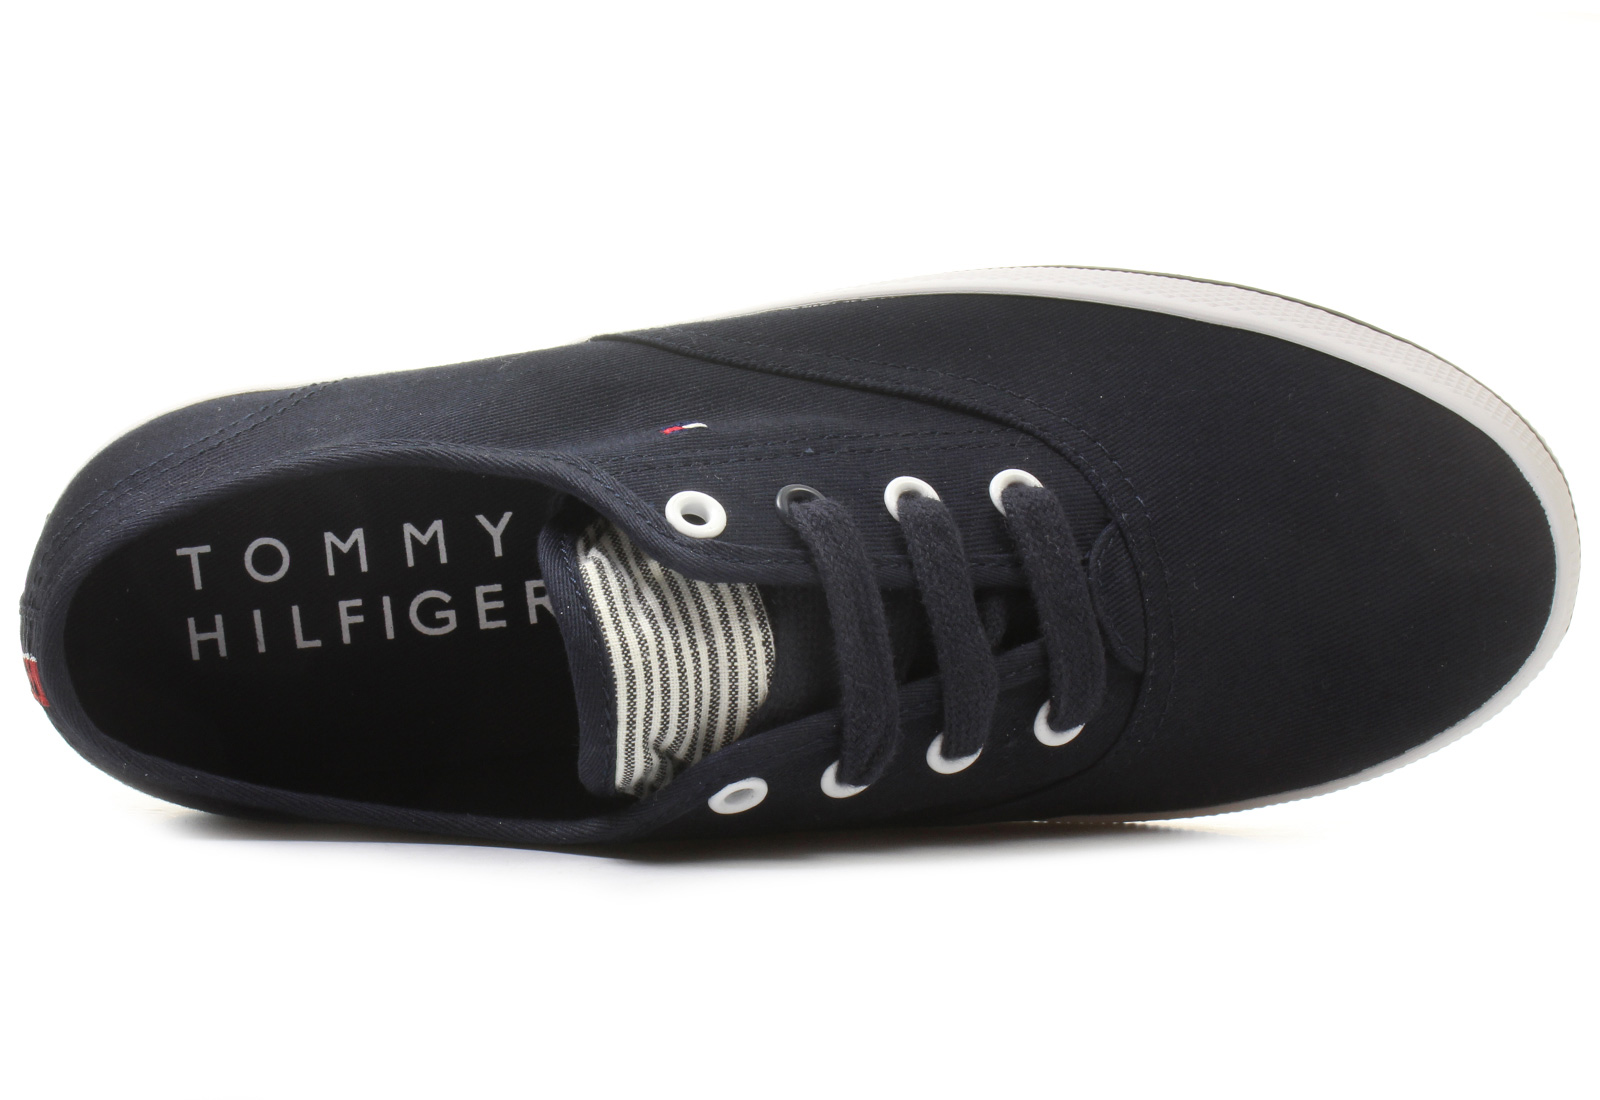 Tommy Hilfiger Tornacipő - Victoria 1d - 14S-6883-403 - Office Shoes ... 7eda11354f